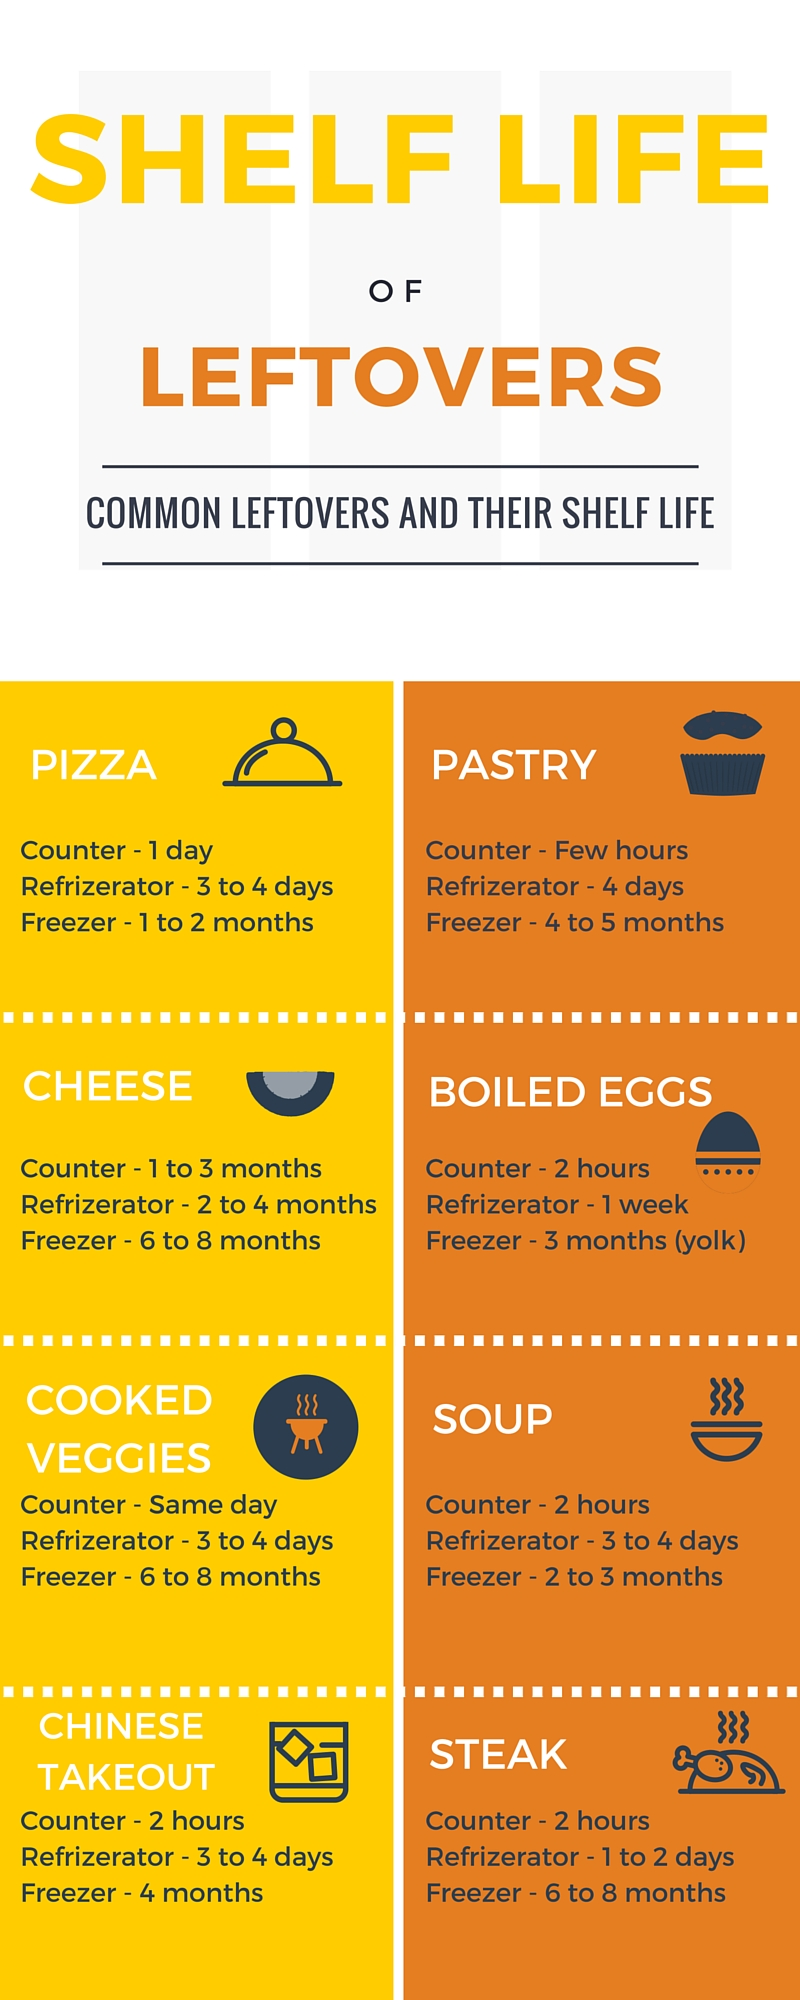 Leftover Foods and Their Shelf Life